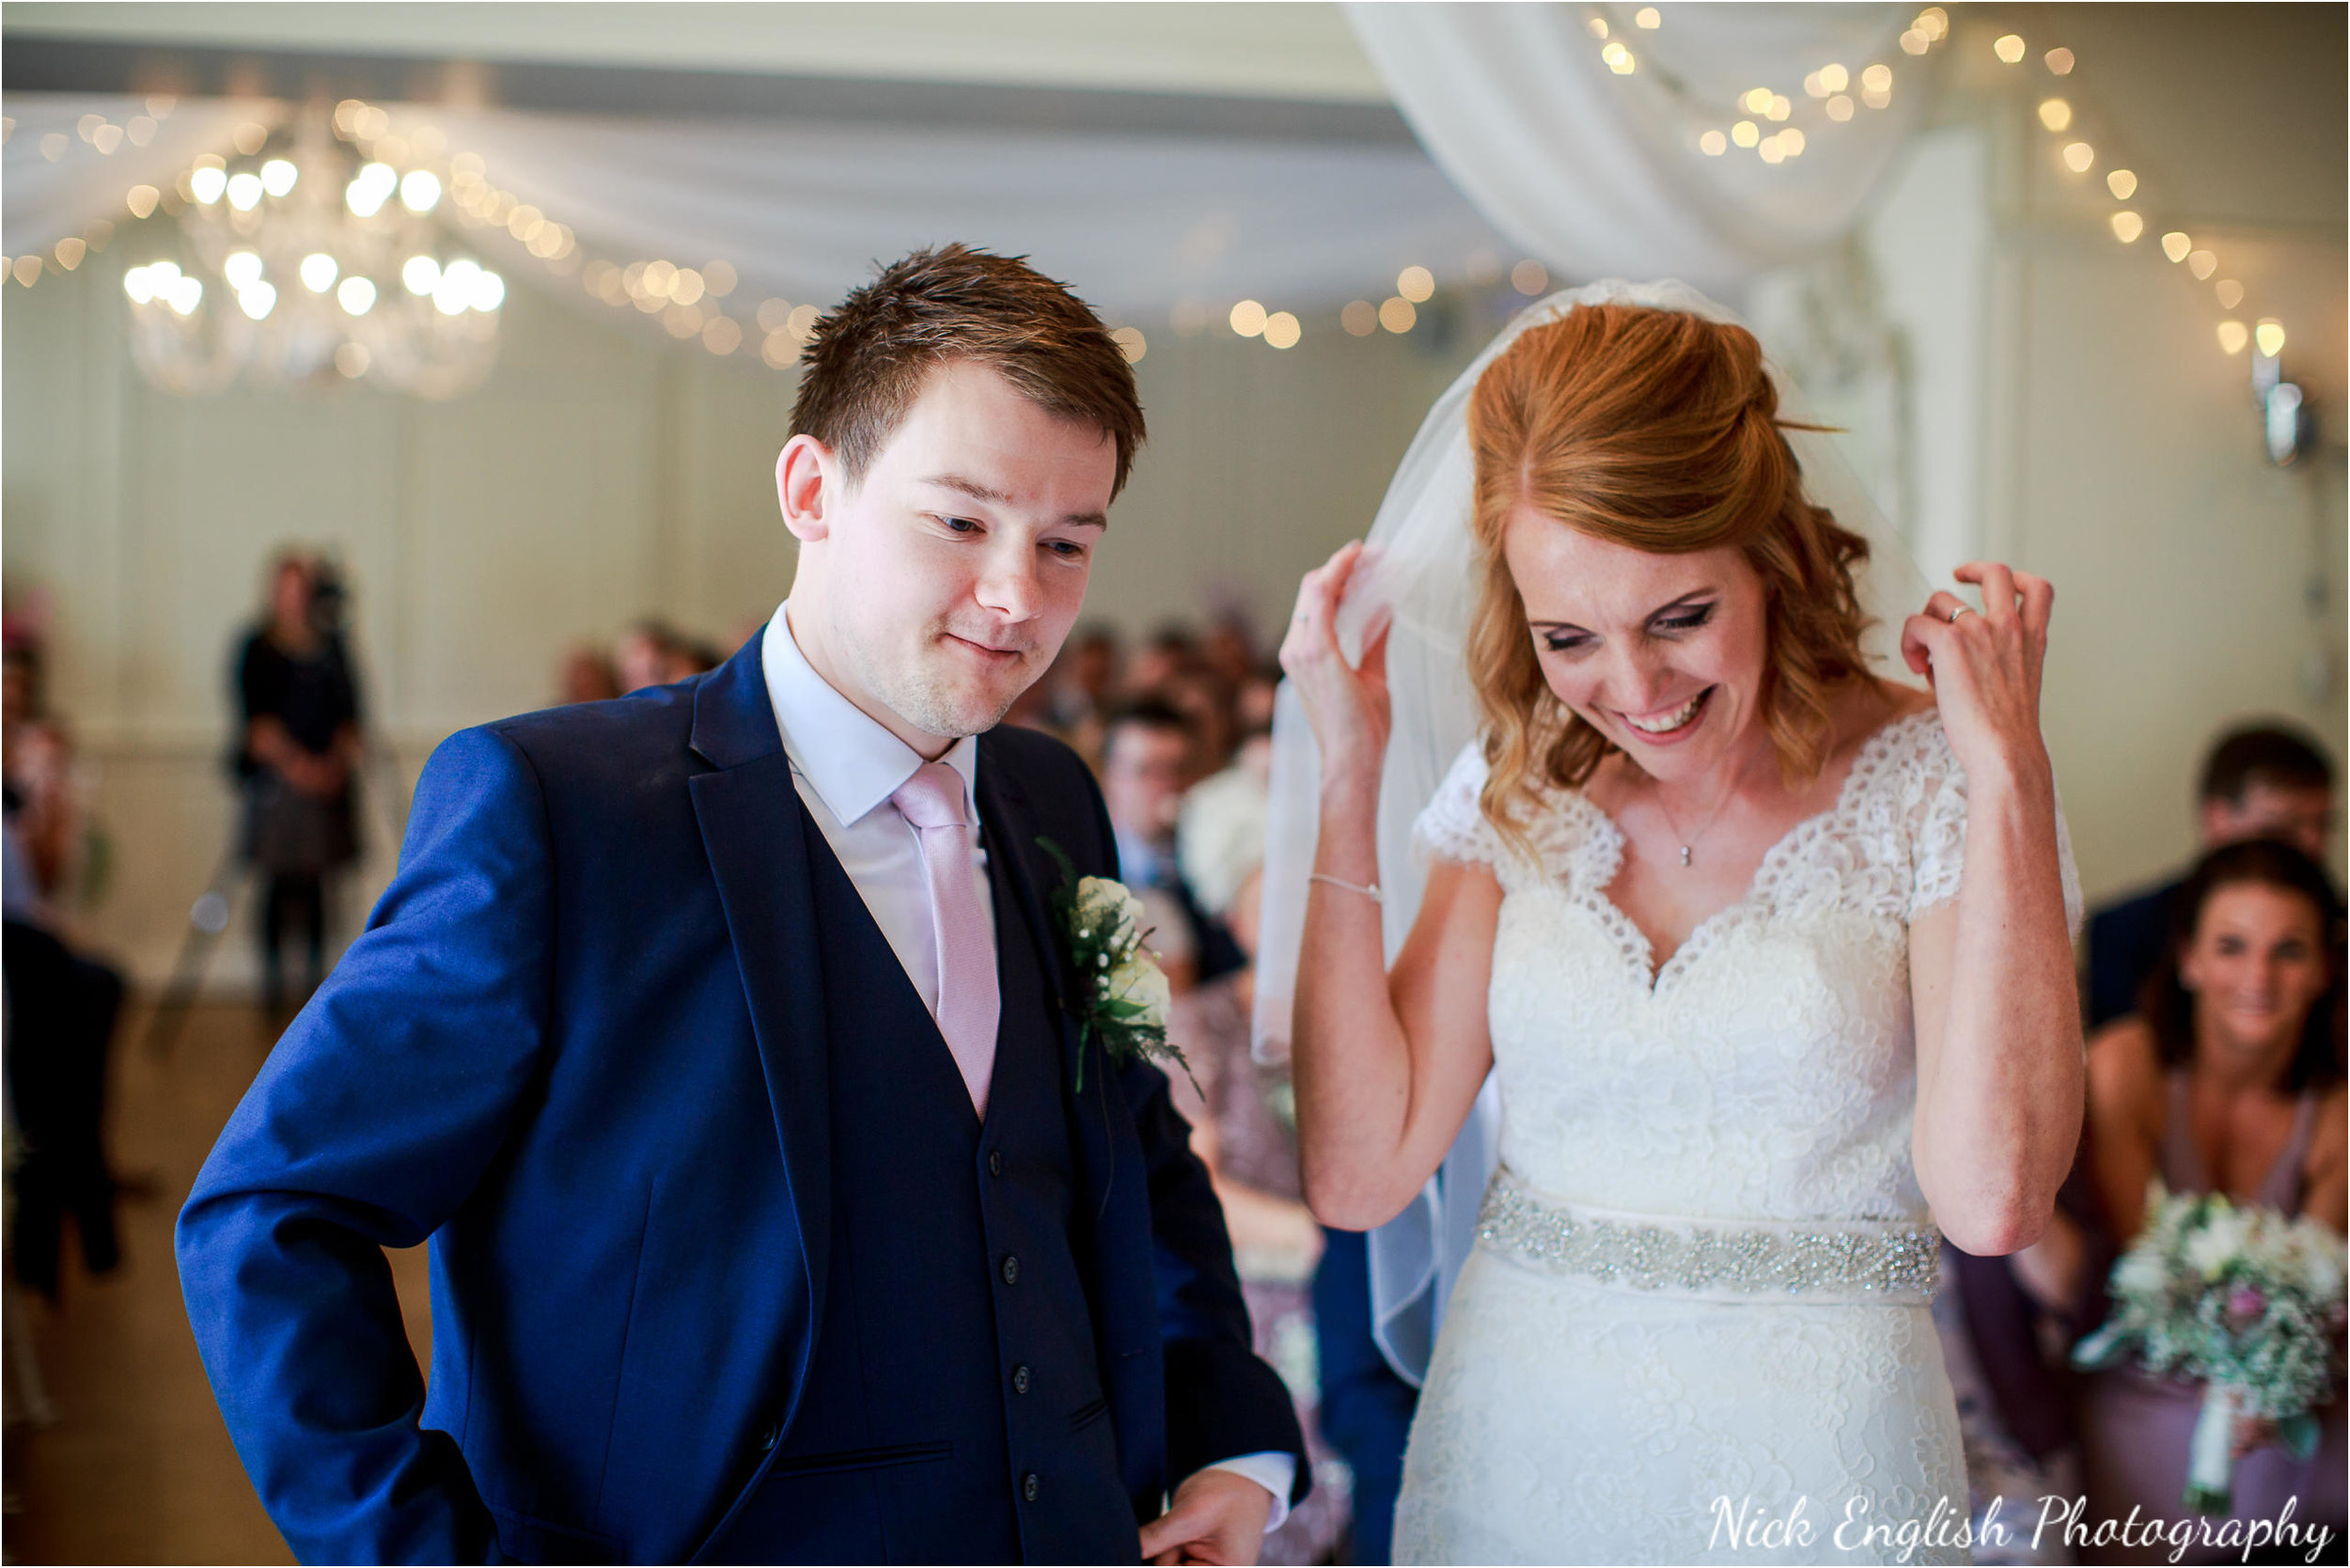 Alison James Wedding Photographs at Eaves Hall West Bradford 108jpg.jpeg